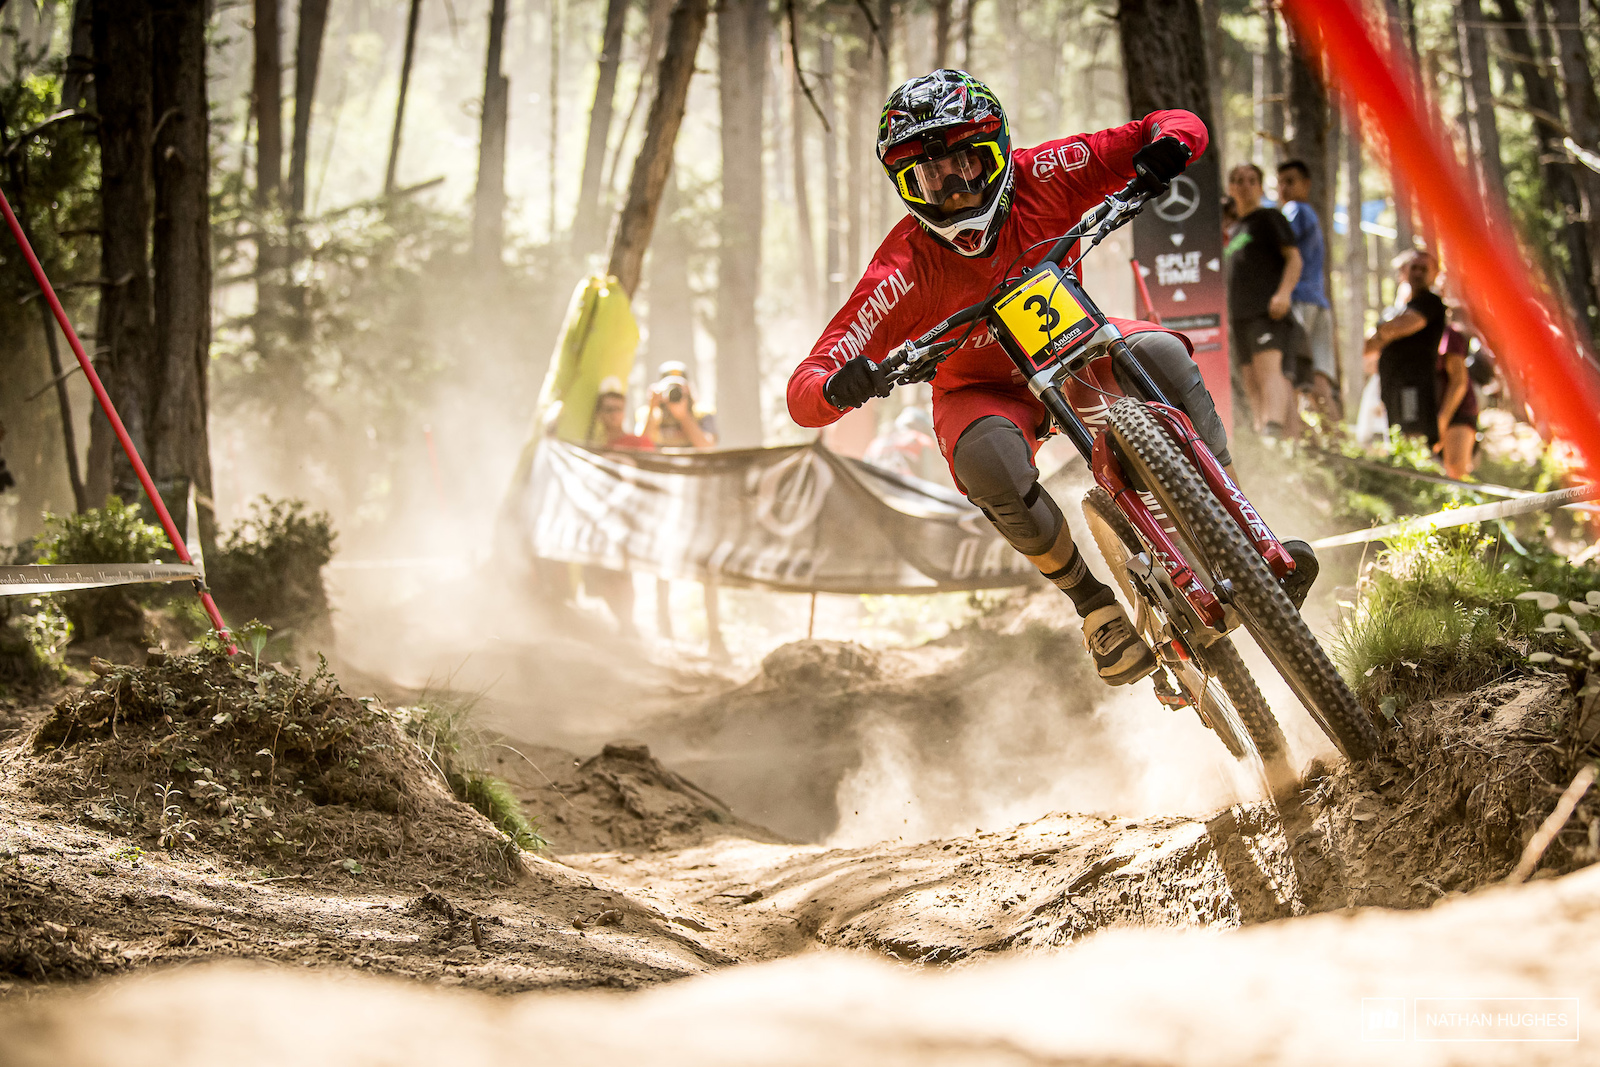 Amaury Pierron wants to do this in Commencal country. He has 3.4 seconds to find for the big show.